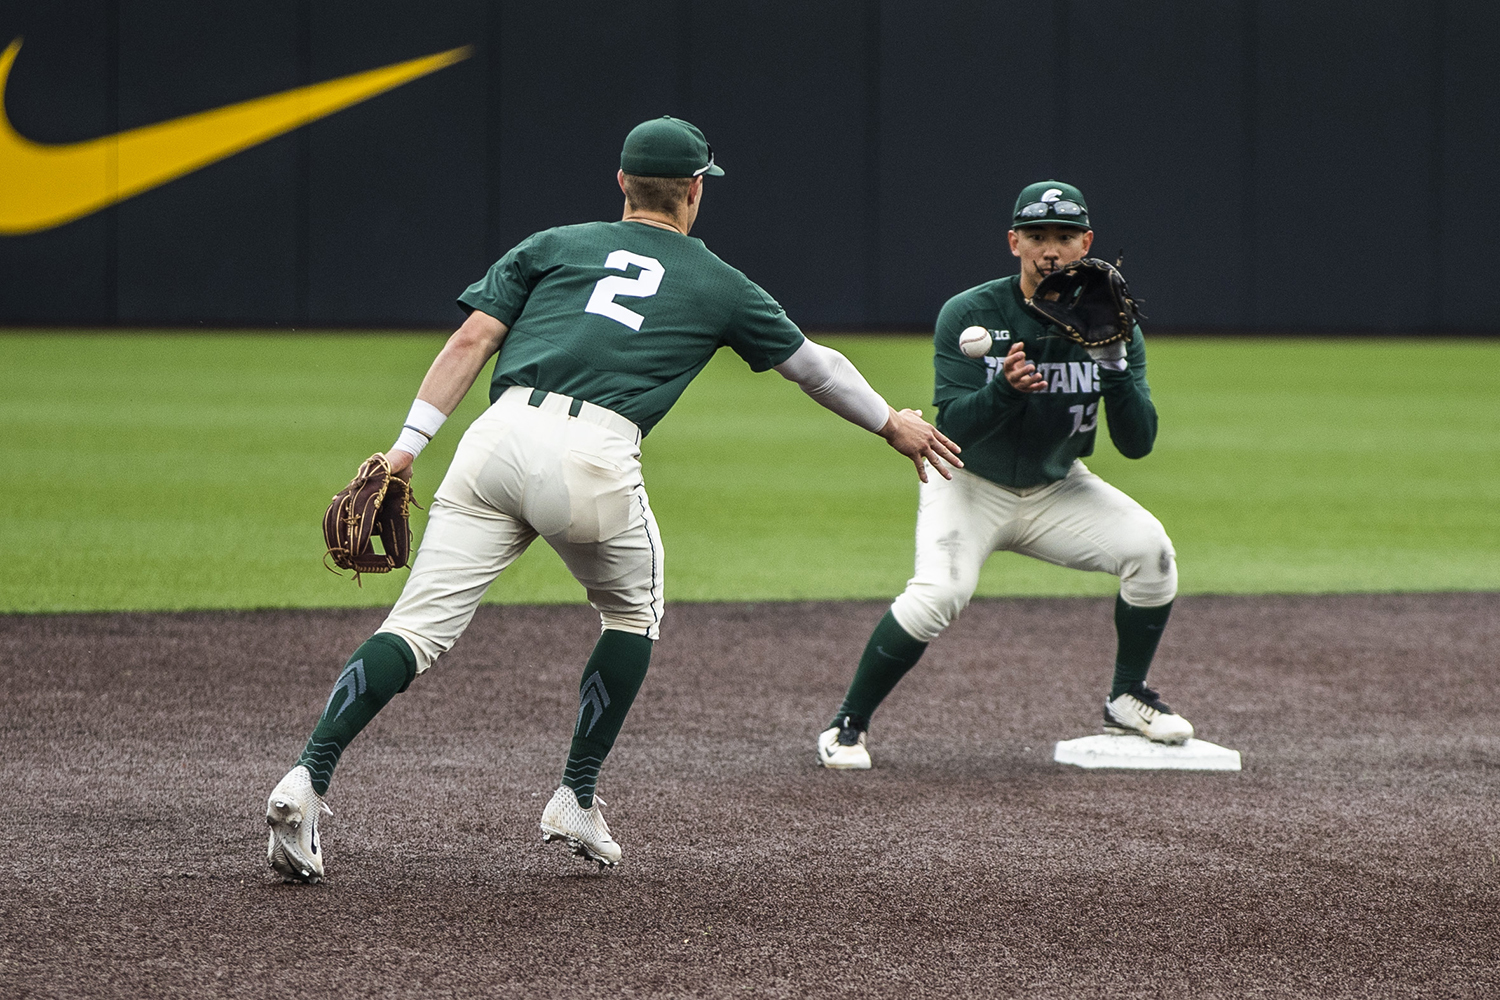 Michigan State infielder Marty Bechina throws the ball to infielder Royce Ando during the baseball game against Michigan State at Duane Banks Field on Saturday, May 11, 2019. The Spartans defeated the Hawkeyes 9-4.